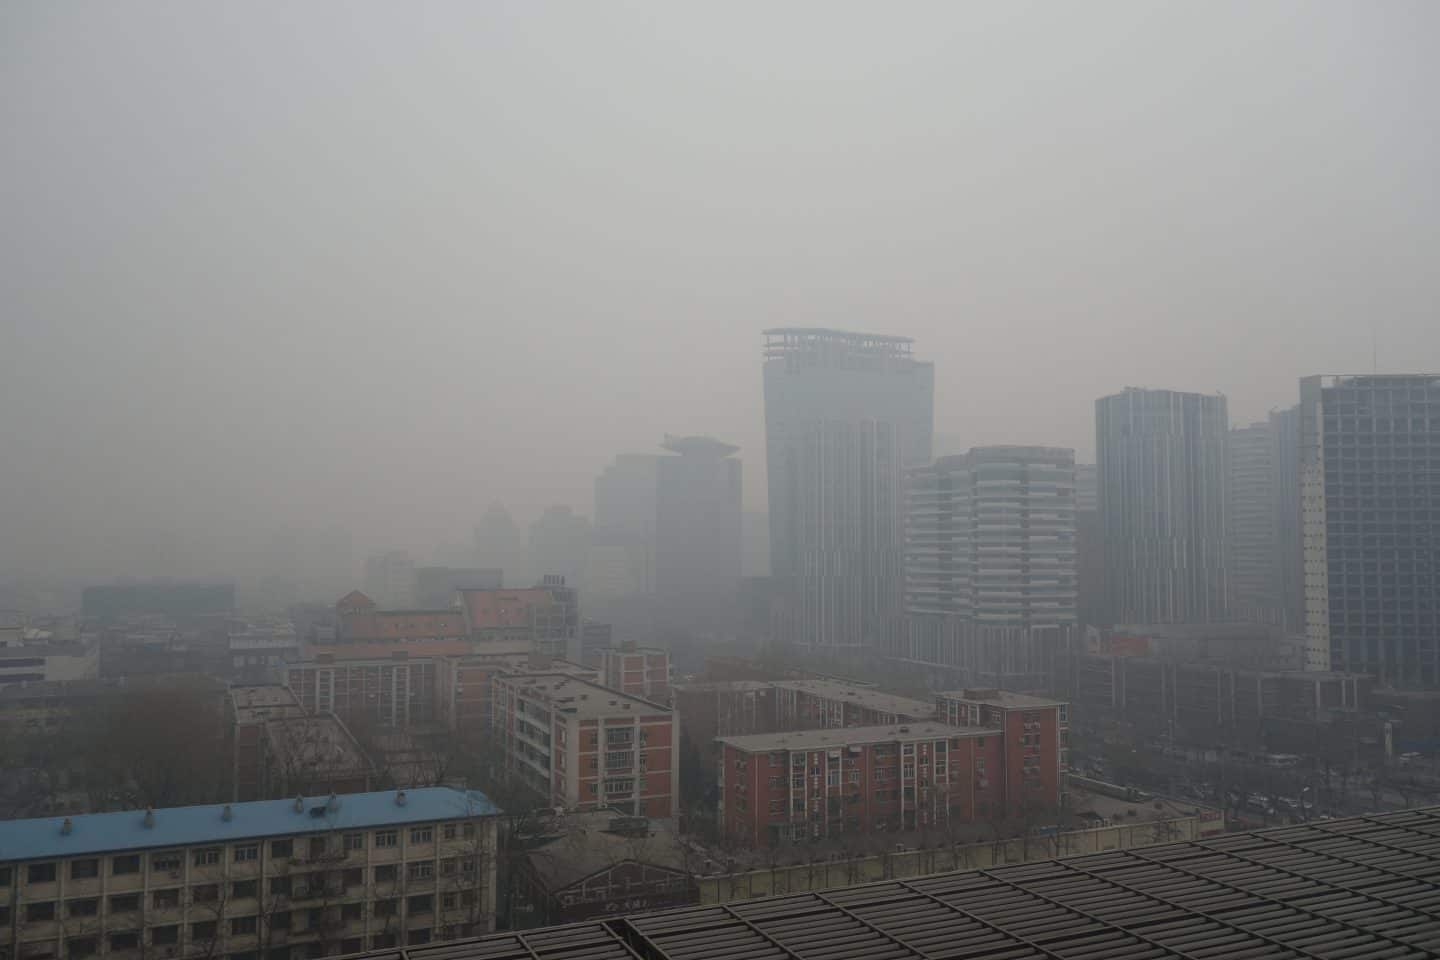 Weekly Digest: Antibiotic resistant bacteria in Beijing smog; insecticide-treated nets not effective against malaria everywhere